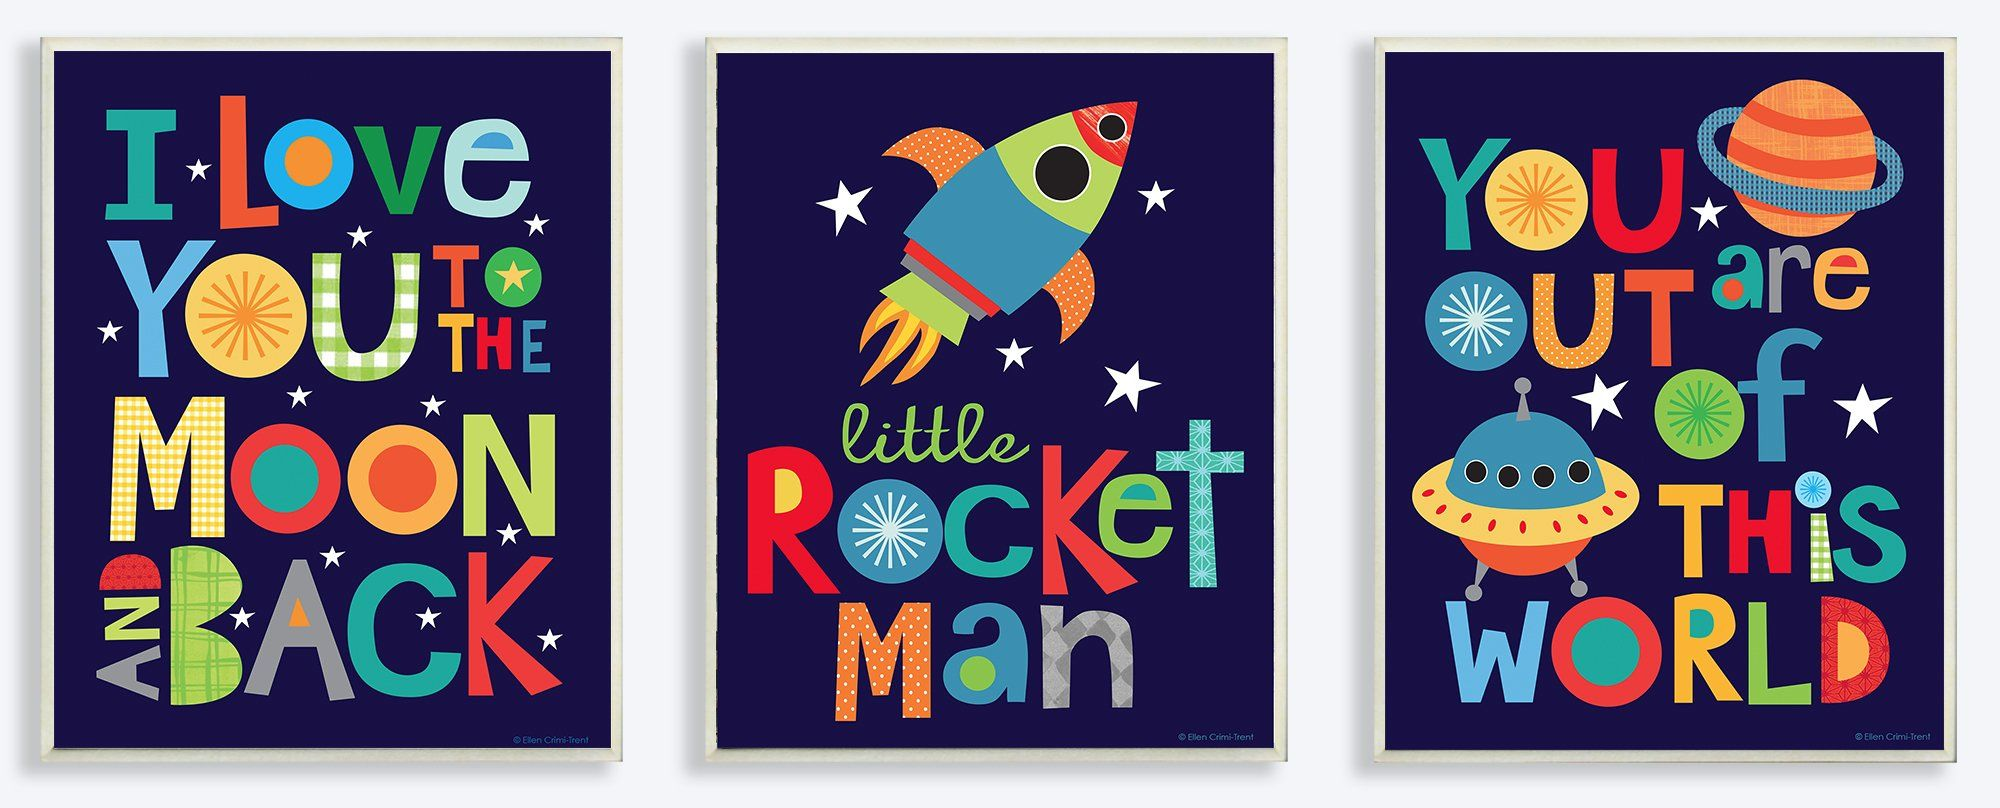 The kids room by stupell i love you to the moon and back textual art